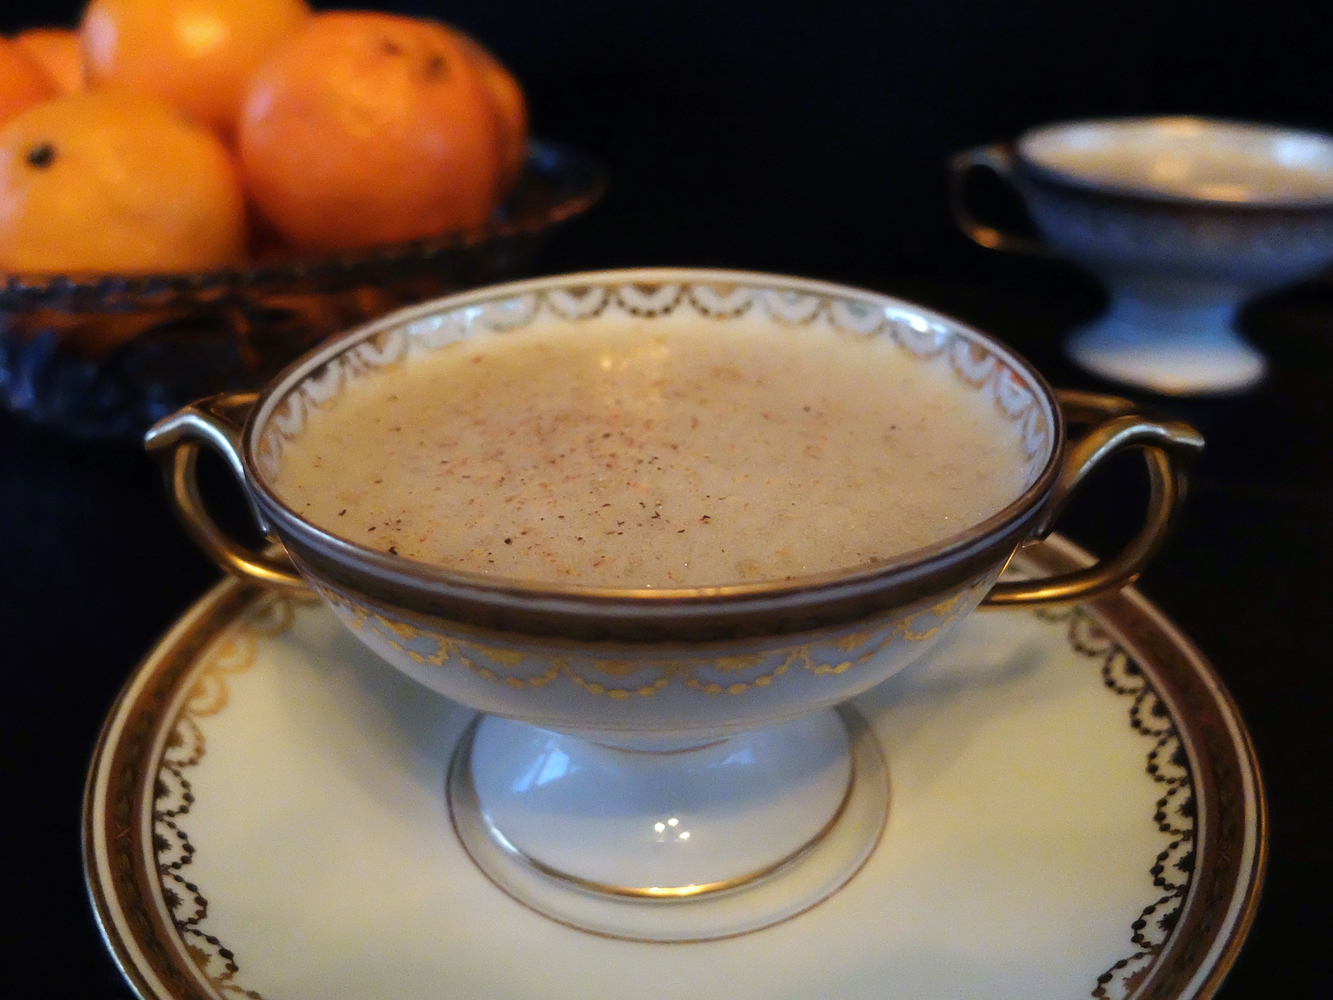 The Dead Rabbit's Mulled Egg-Wine served in 1896 Limoges bouillon cups.